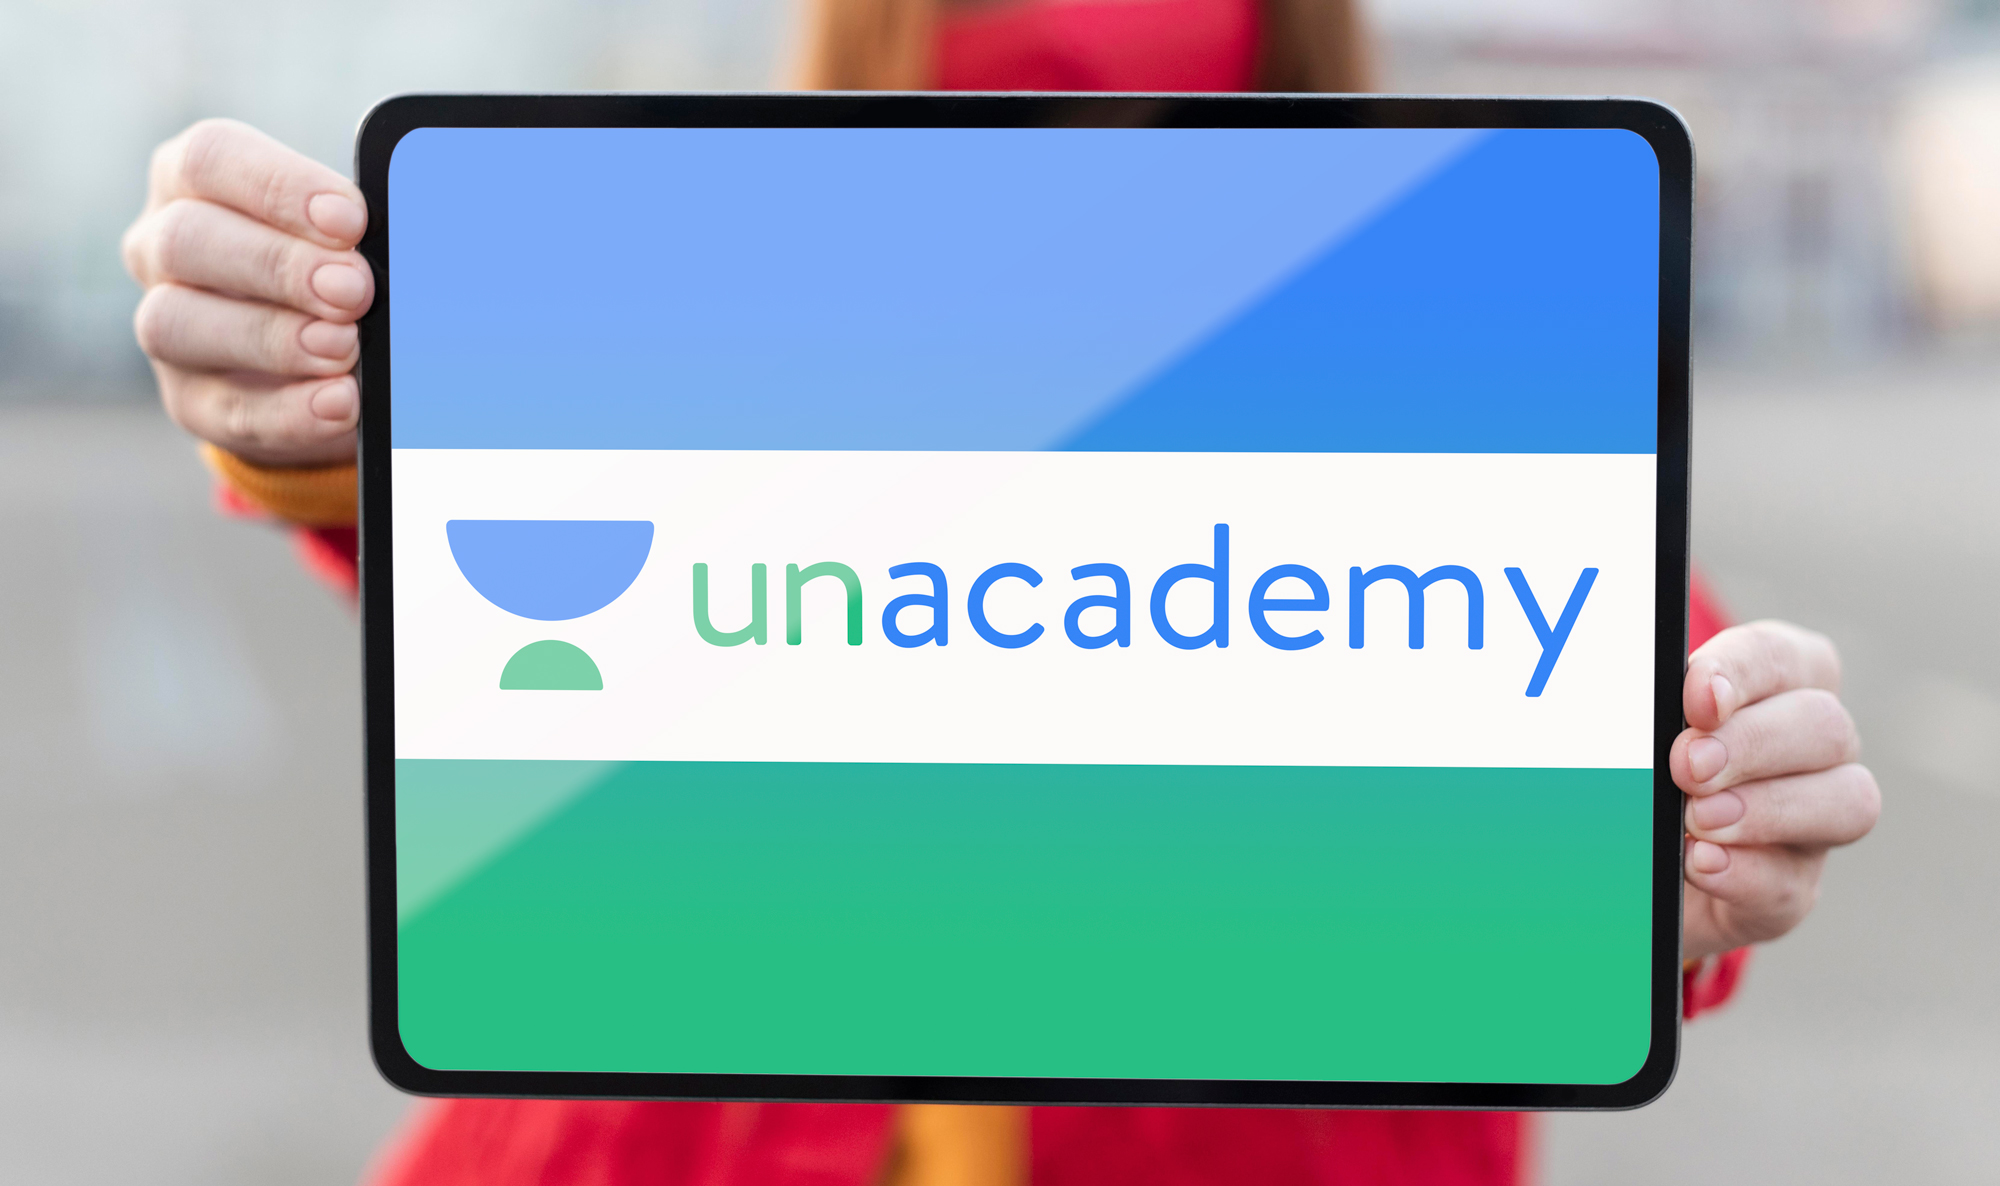 woman holding a tablet displaying Unacademy logo